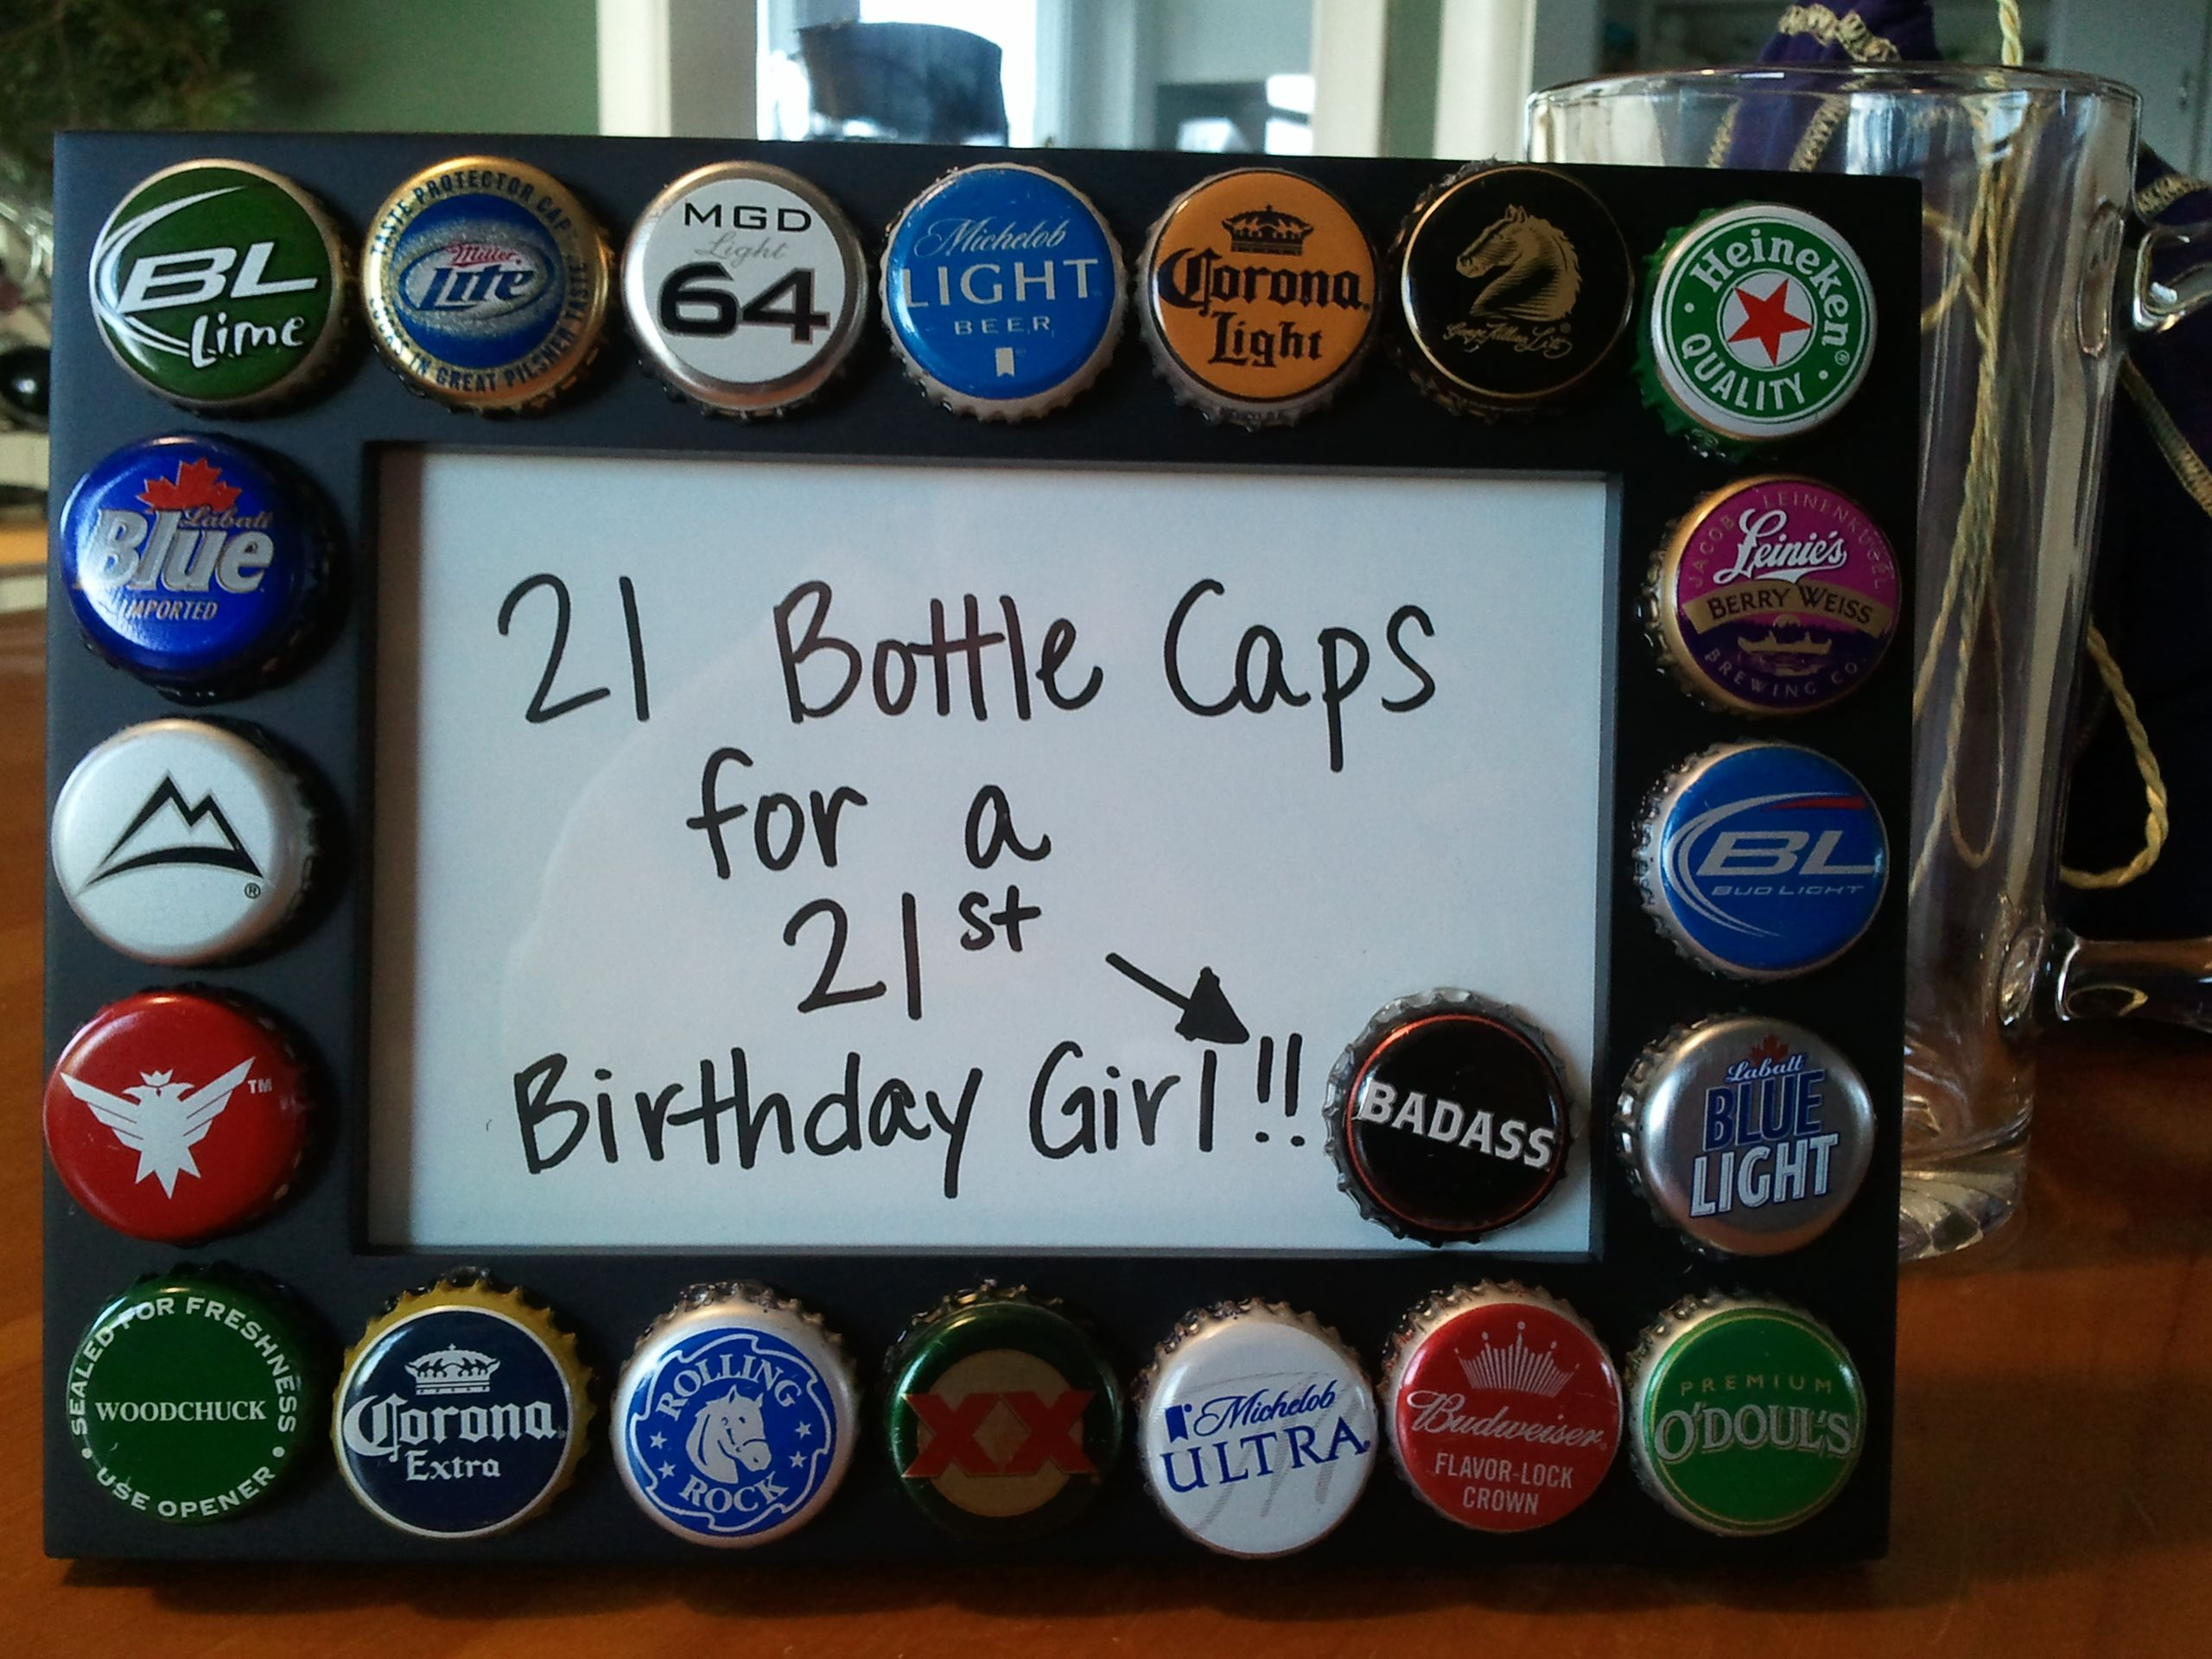 21st birthday gift! Badass!!! This would be good for a guy too ...